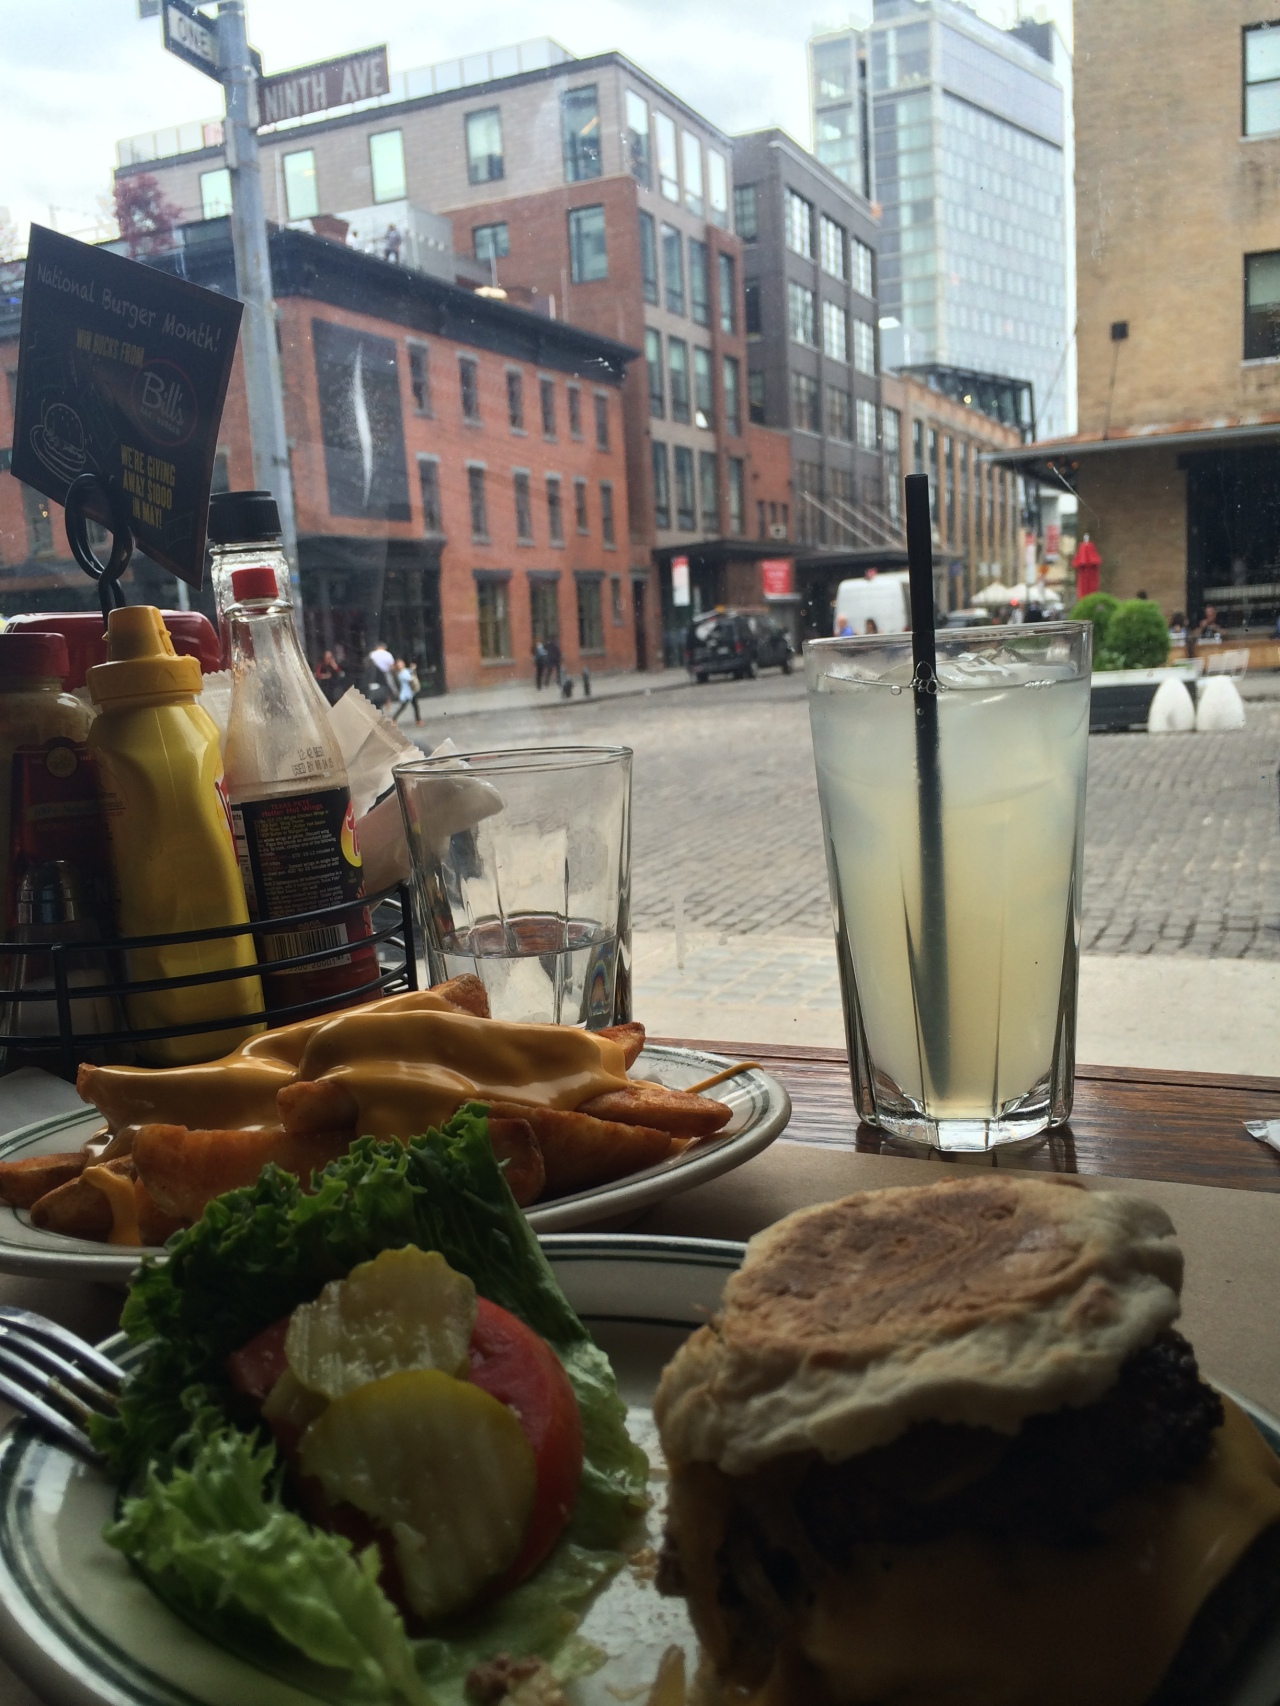 New York's Meatpacking District, a great urban regeneration project and excellent destination for food, drinks andshopping